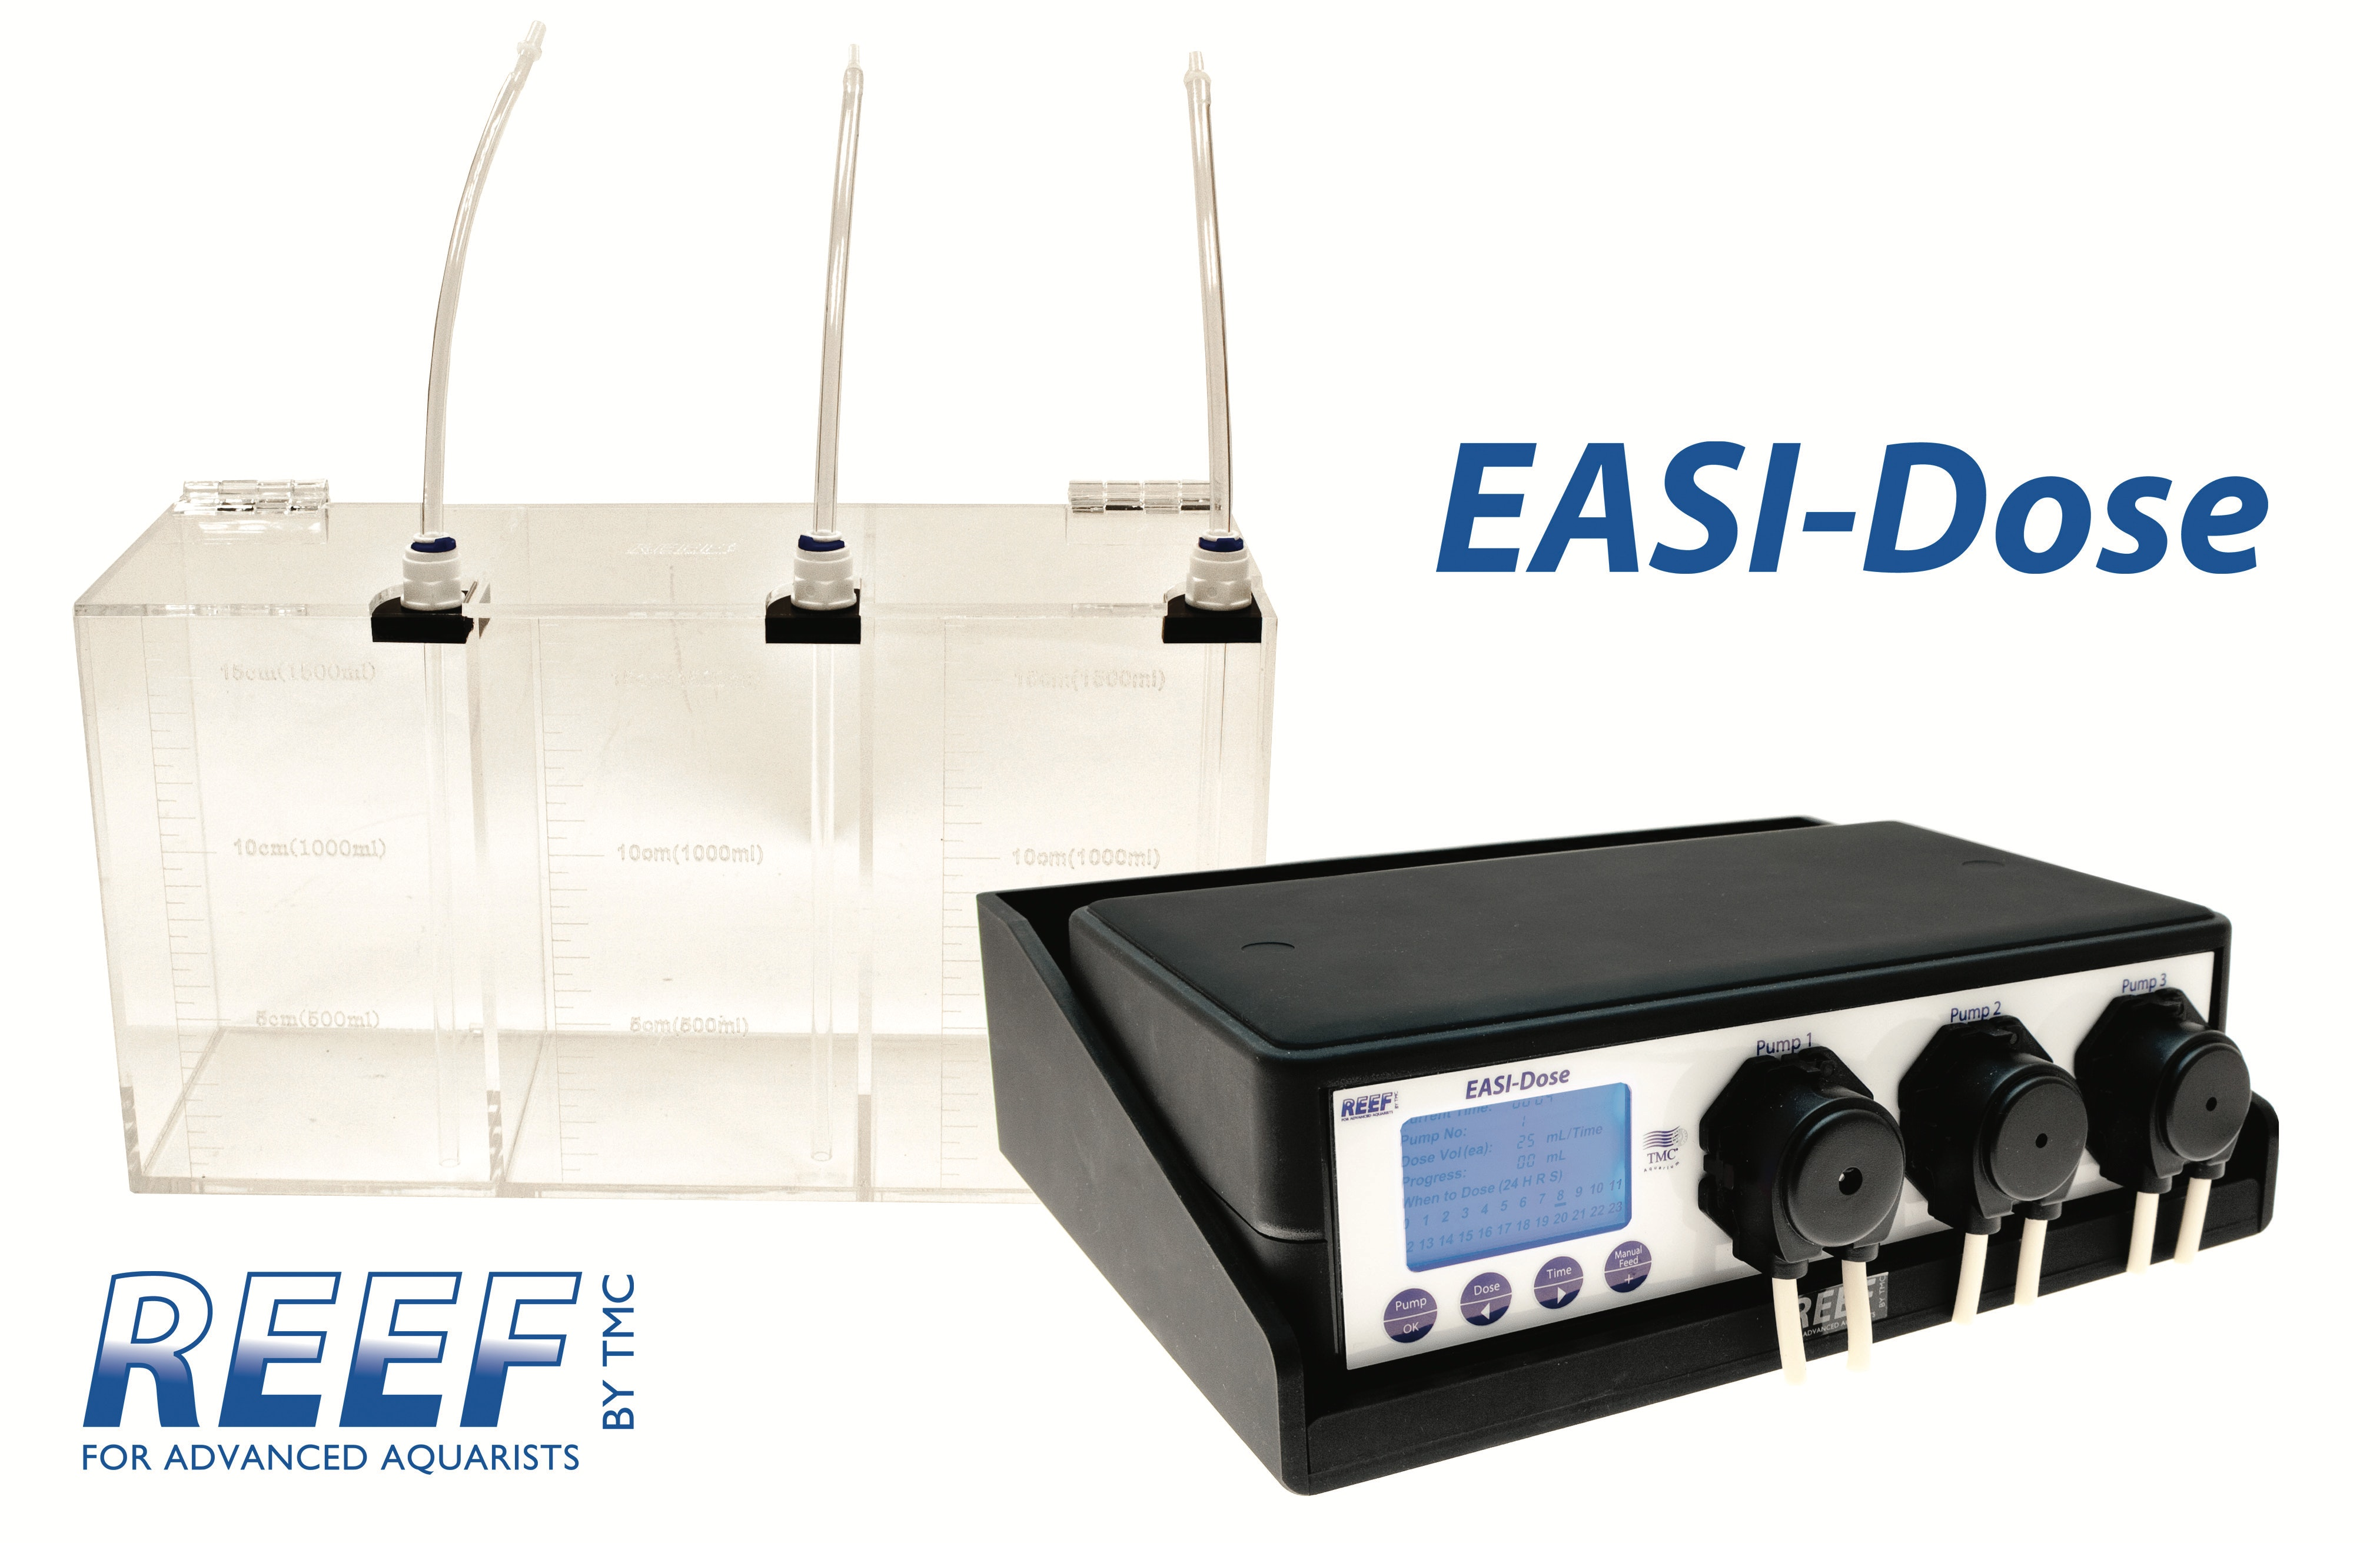 Reef easi dose 3 on shelf with dosing container plus logos